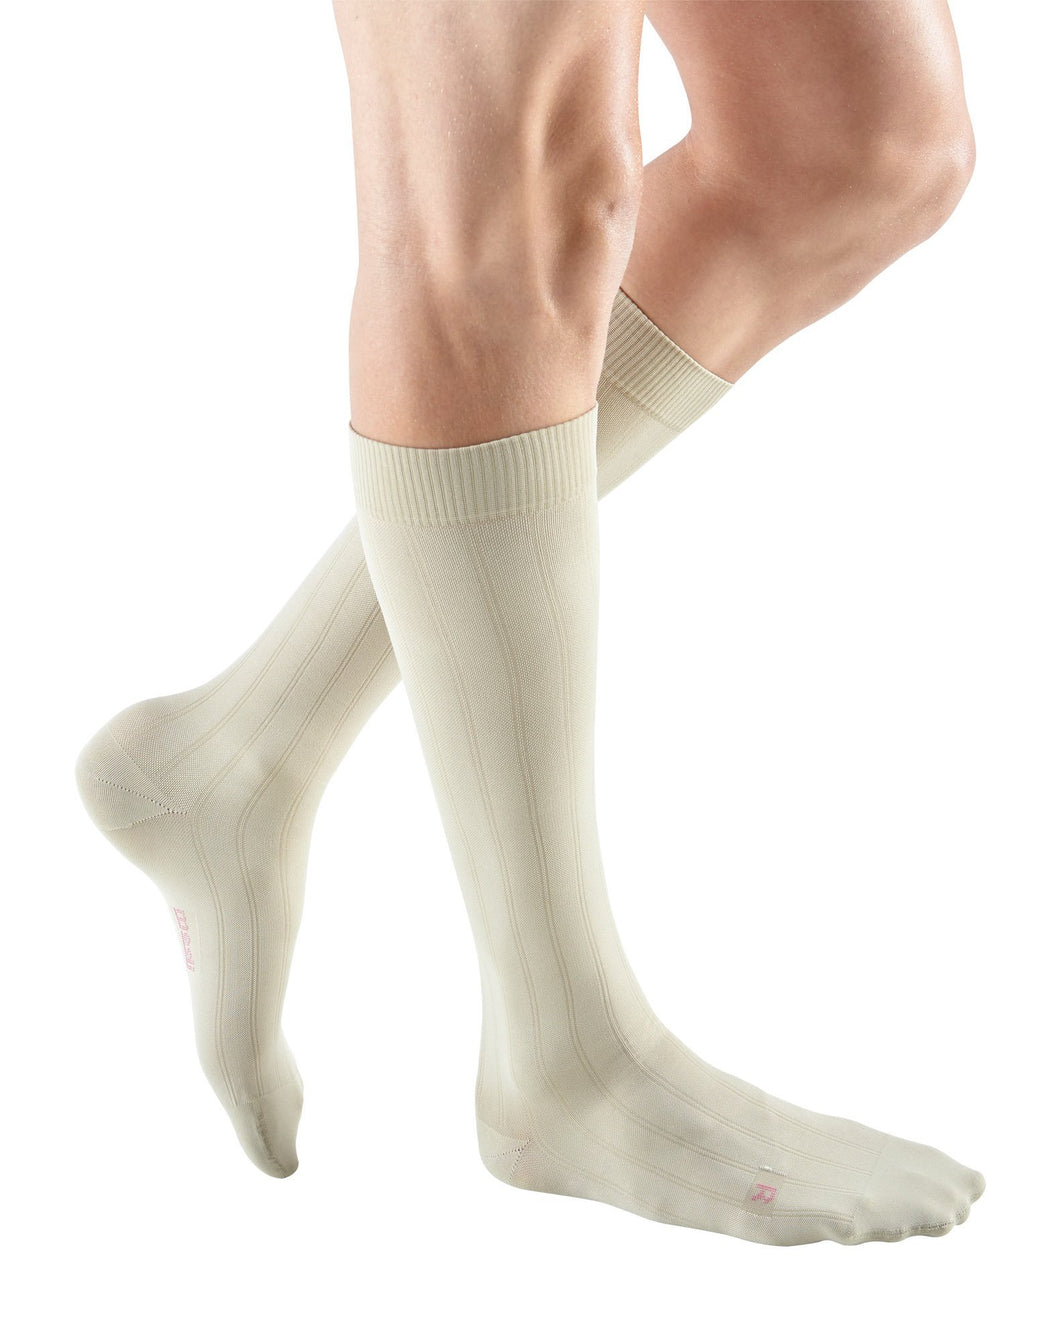 mediven for men classic, 30-40 mmHg, Calf High, Closed Toe